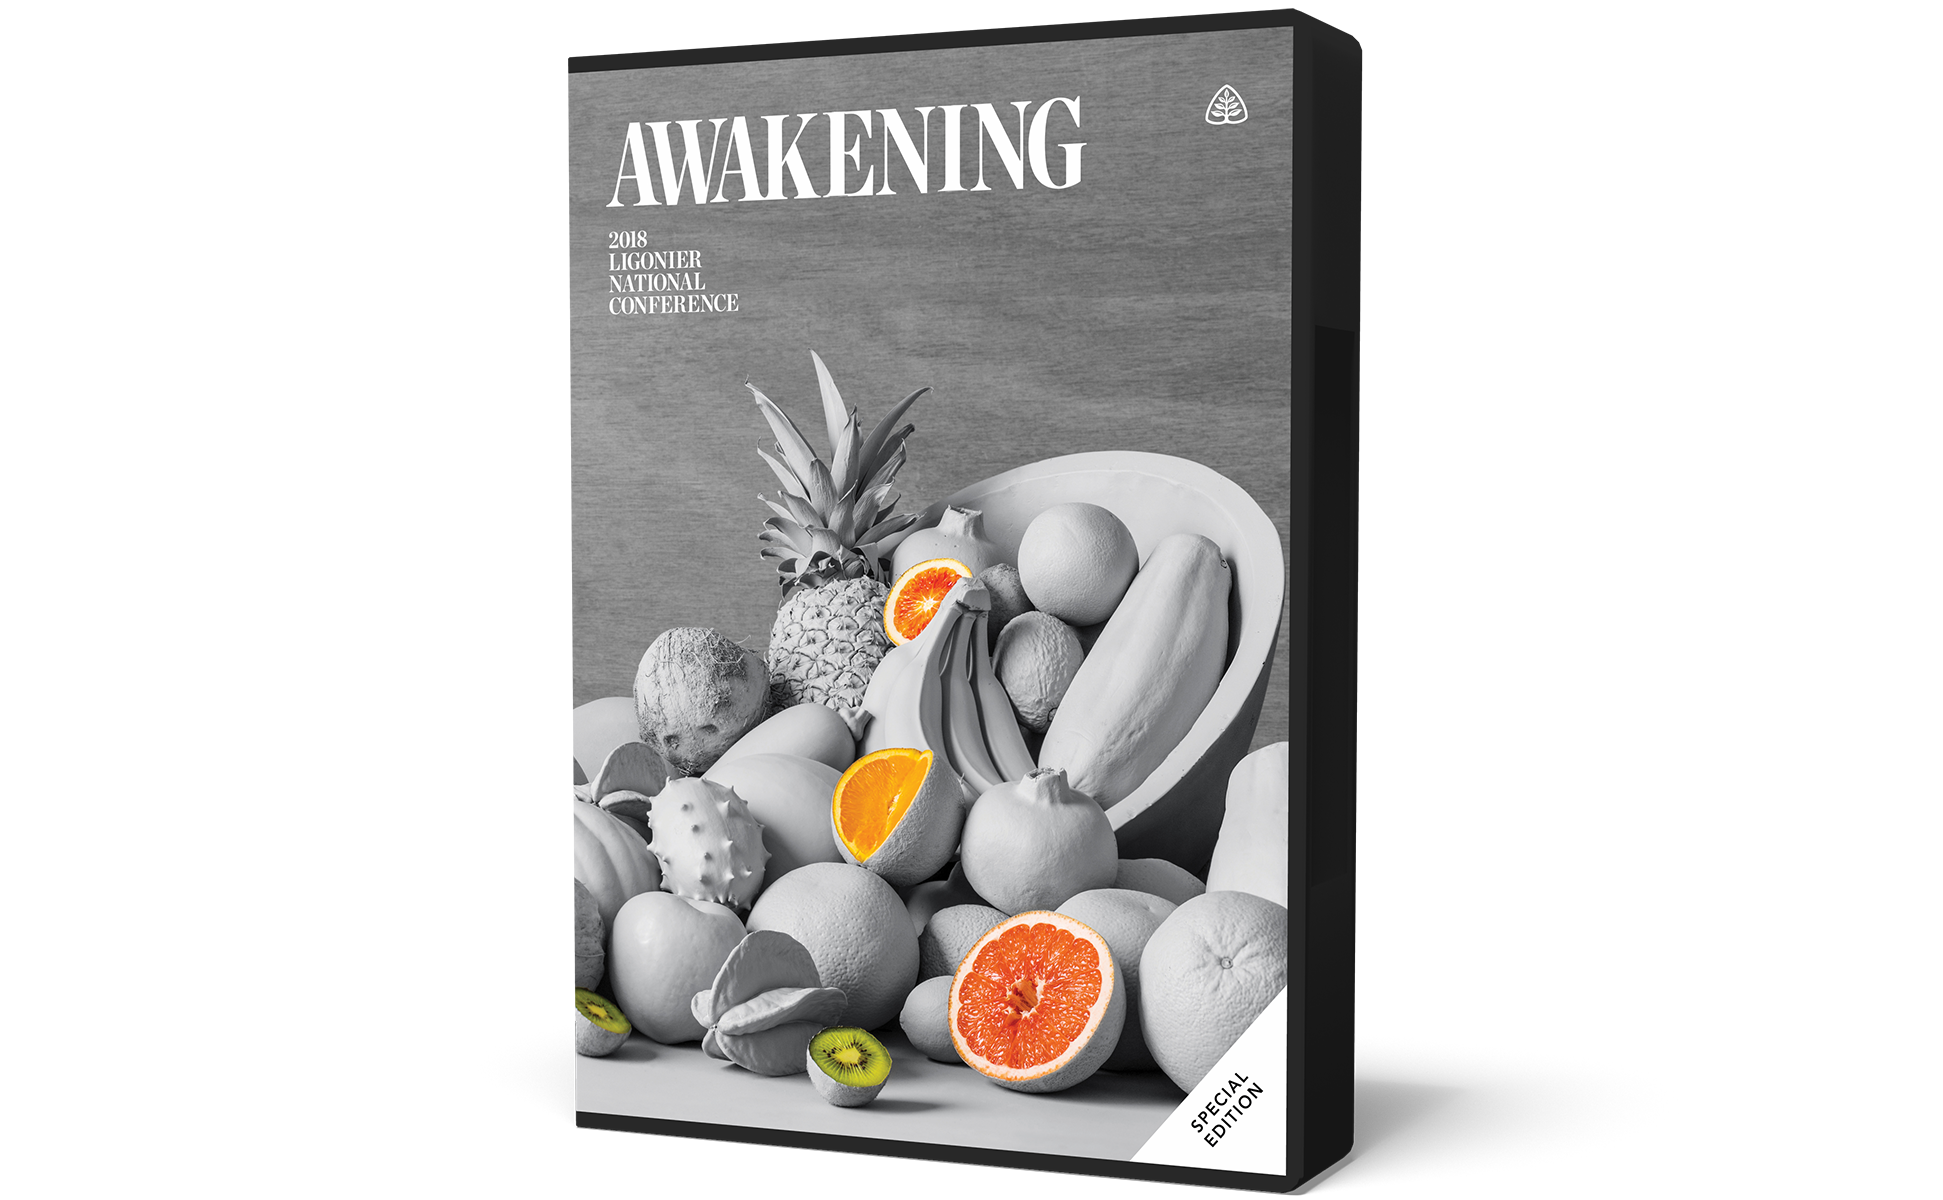 Awakening: 2018 National Conference